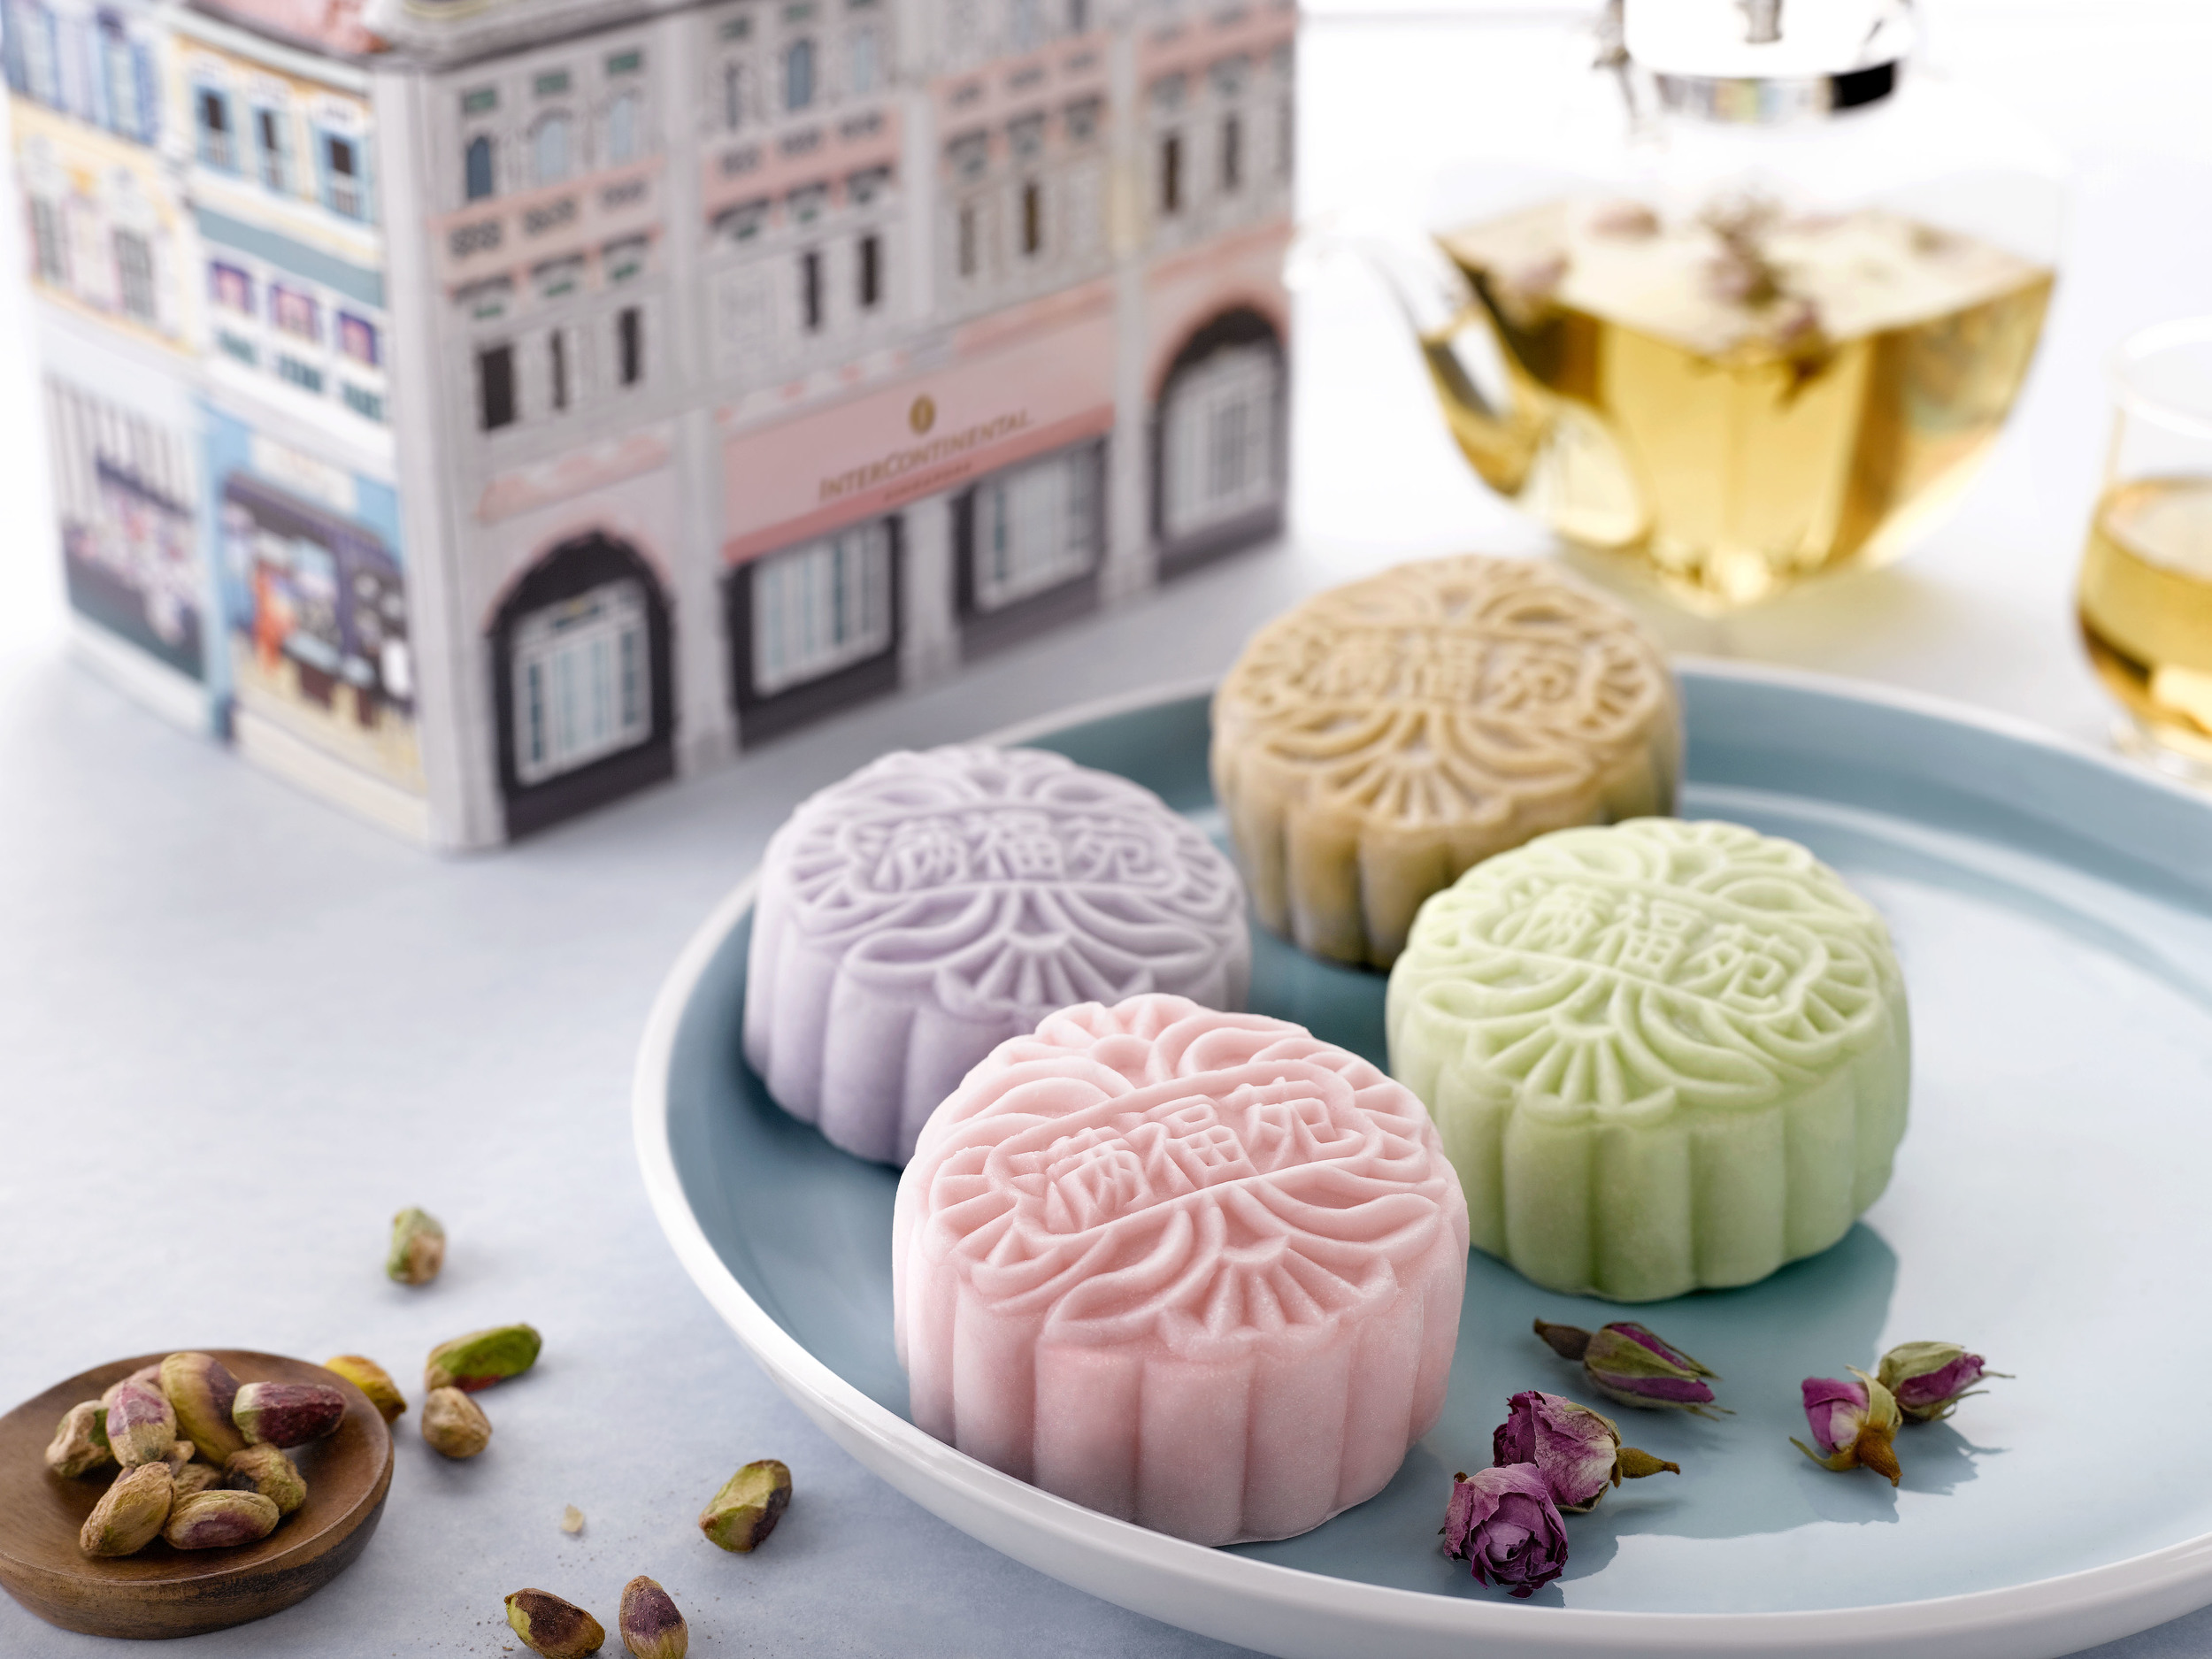 Snowskin Tea Mooncake Selection (冰皮精选茶系列月饼) - S$66 for 4 Pieces